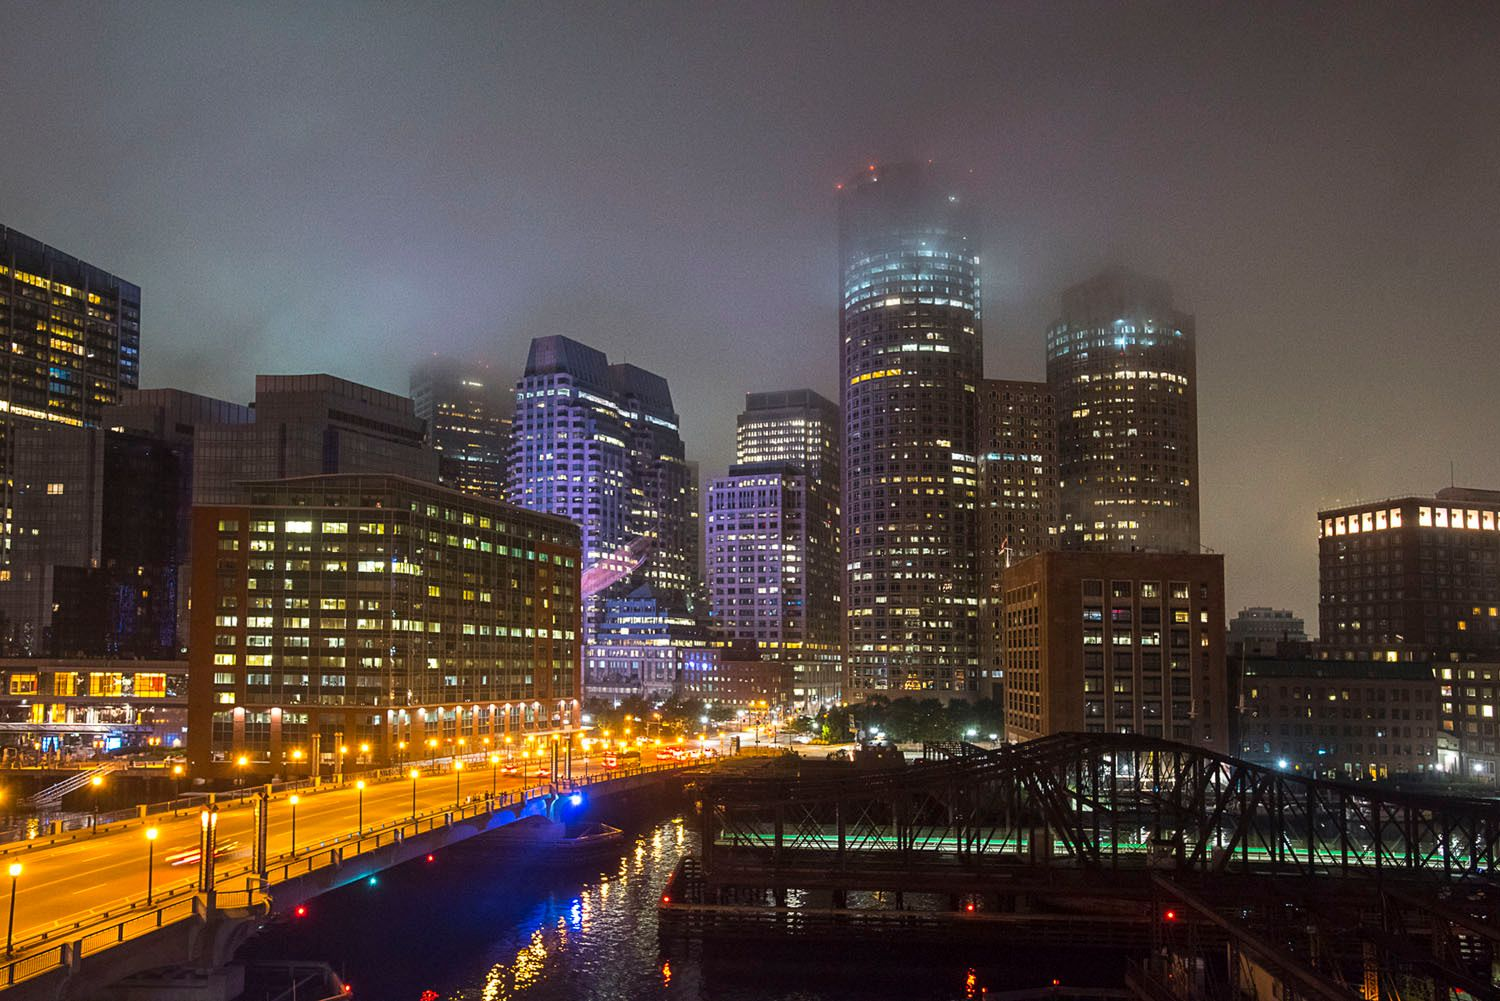 Boston at night in the fog